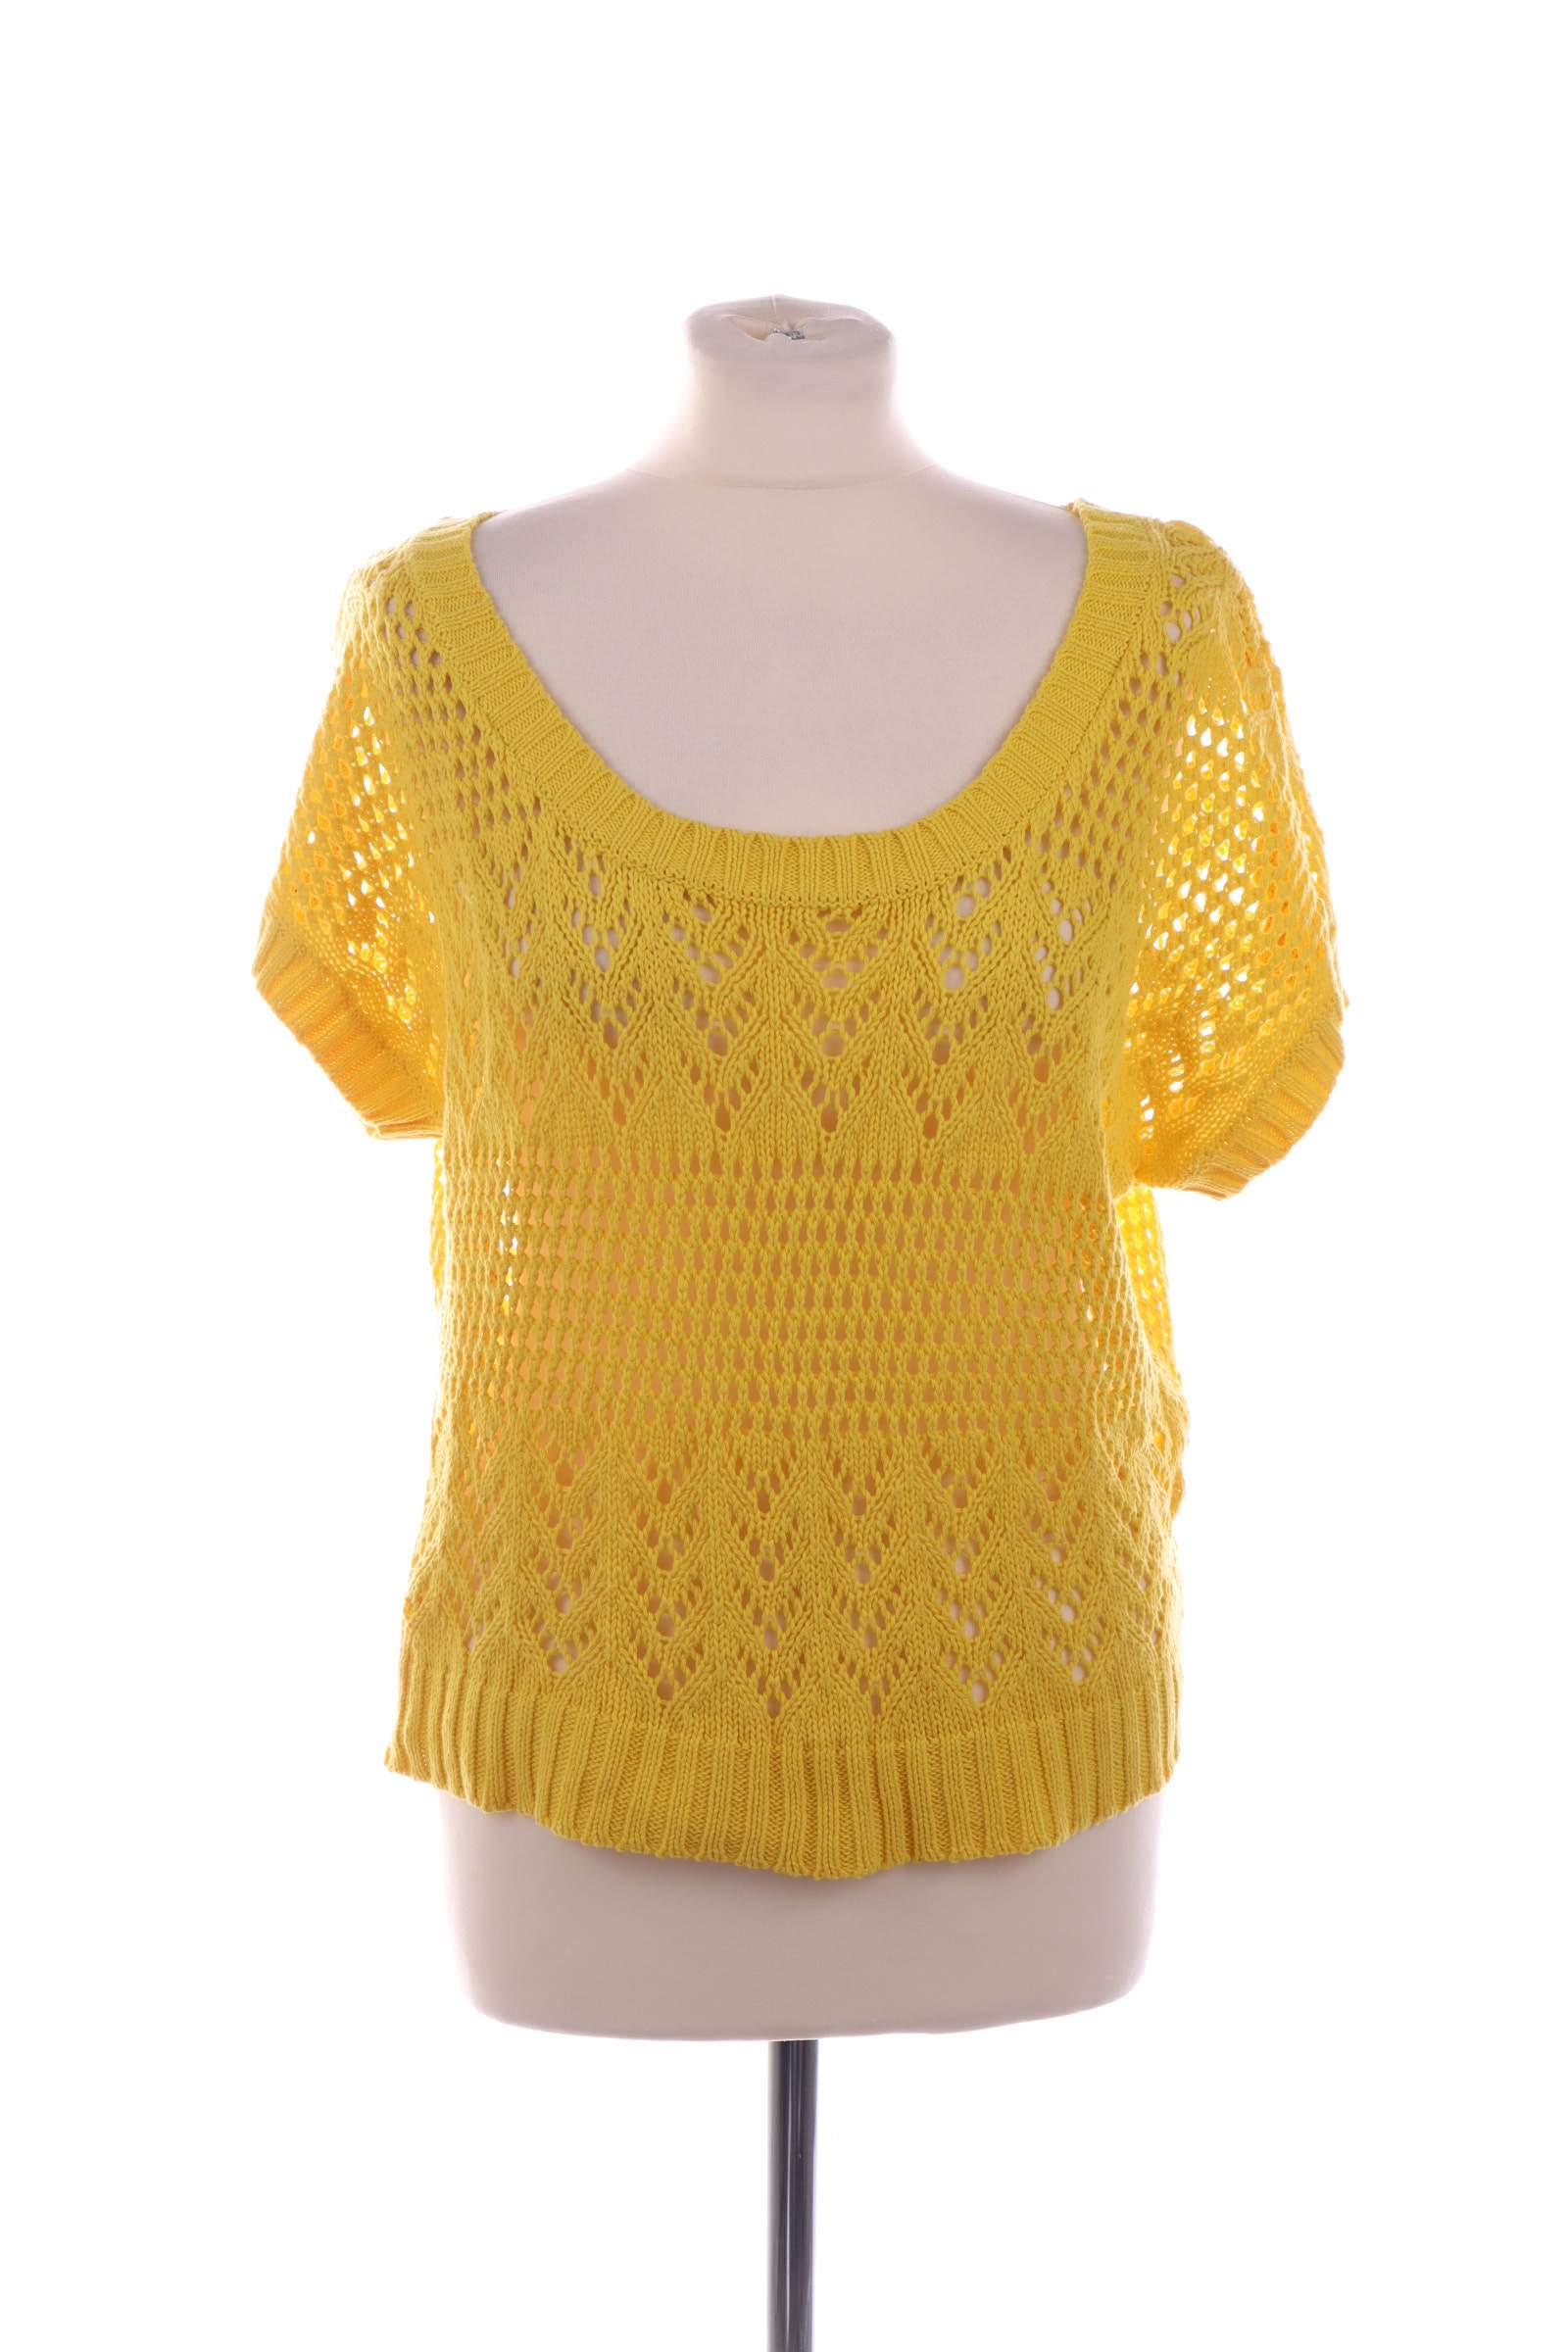 H Yellow Top